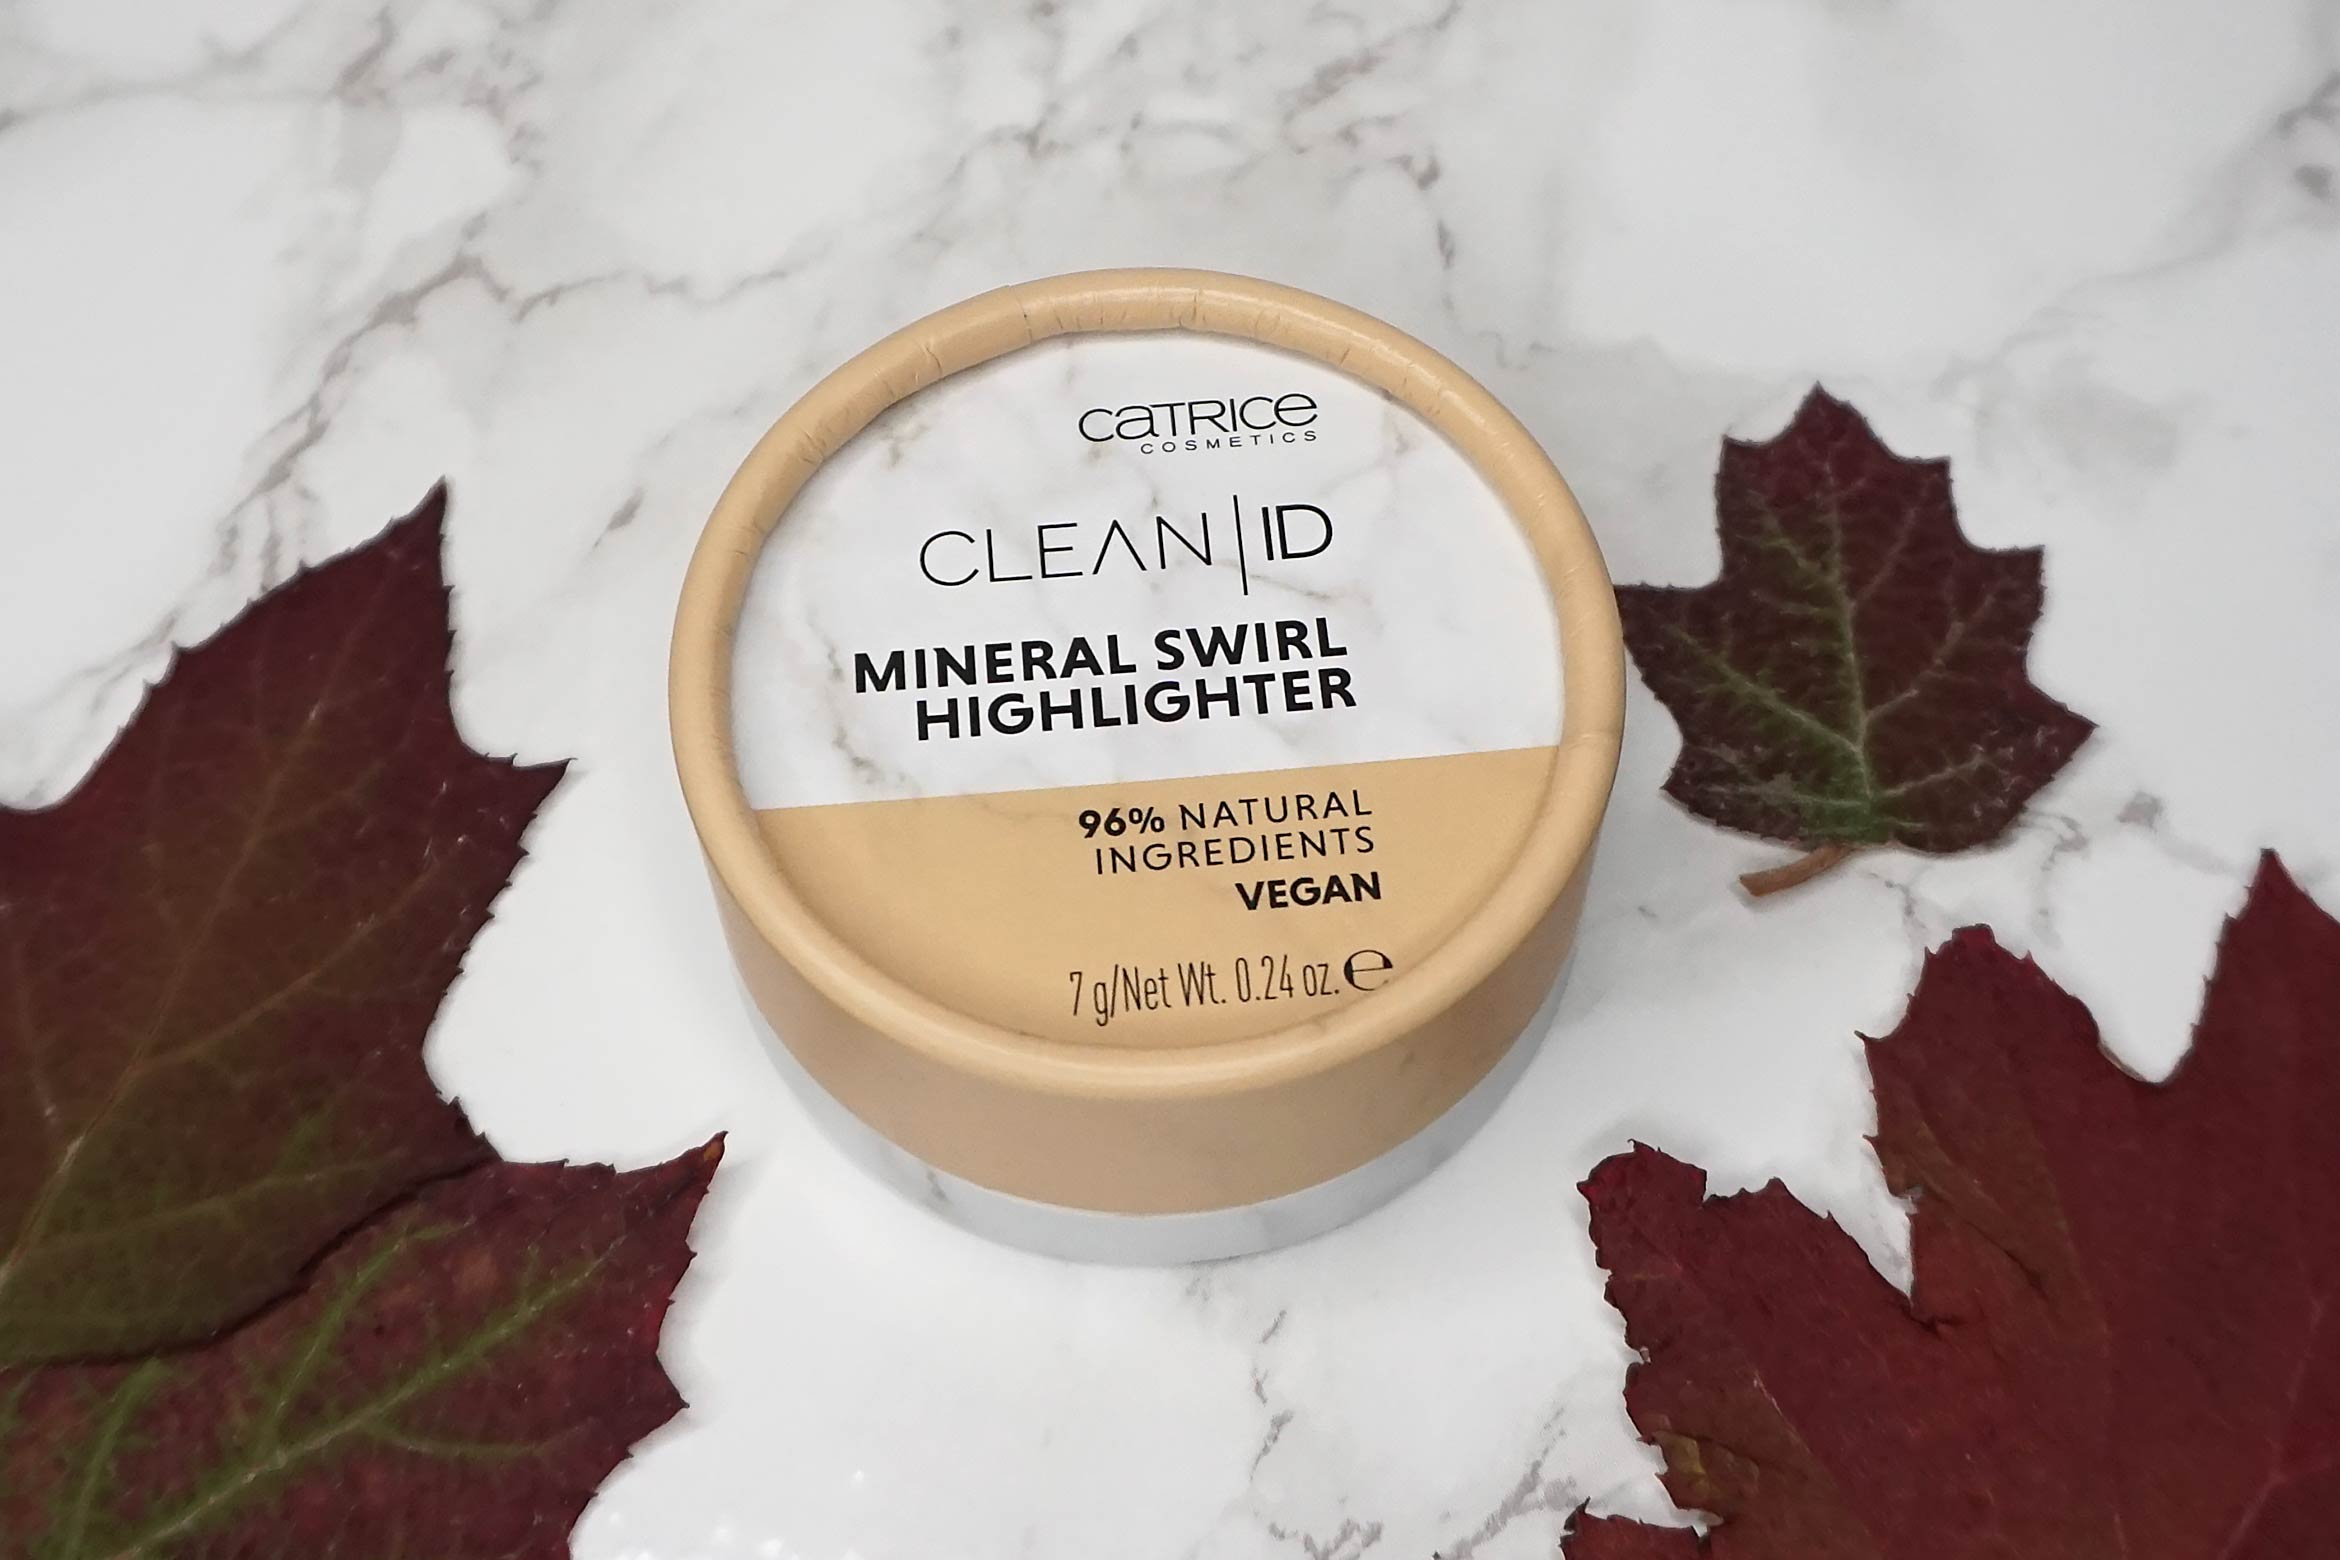 catrice-clean-id-mineral-swirl-highlighter-review-1